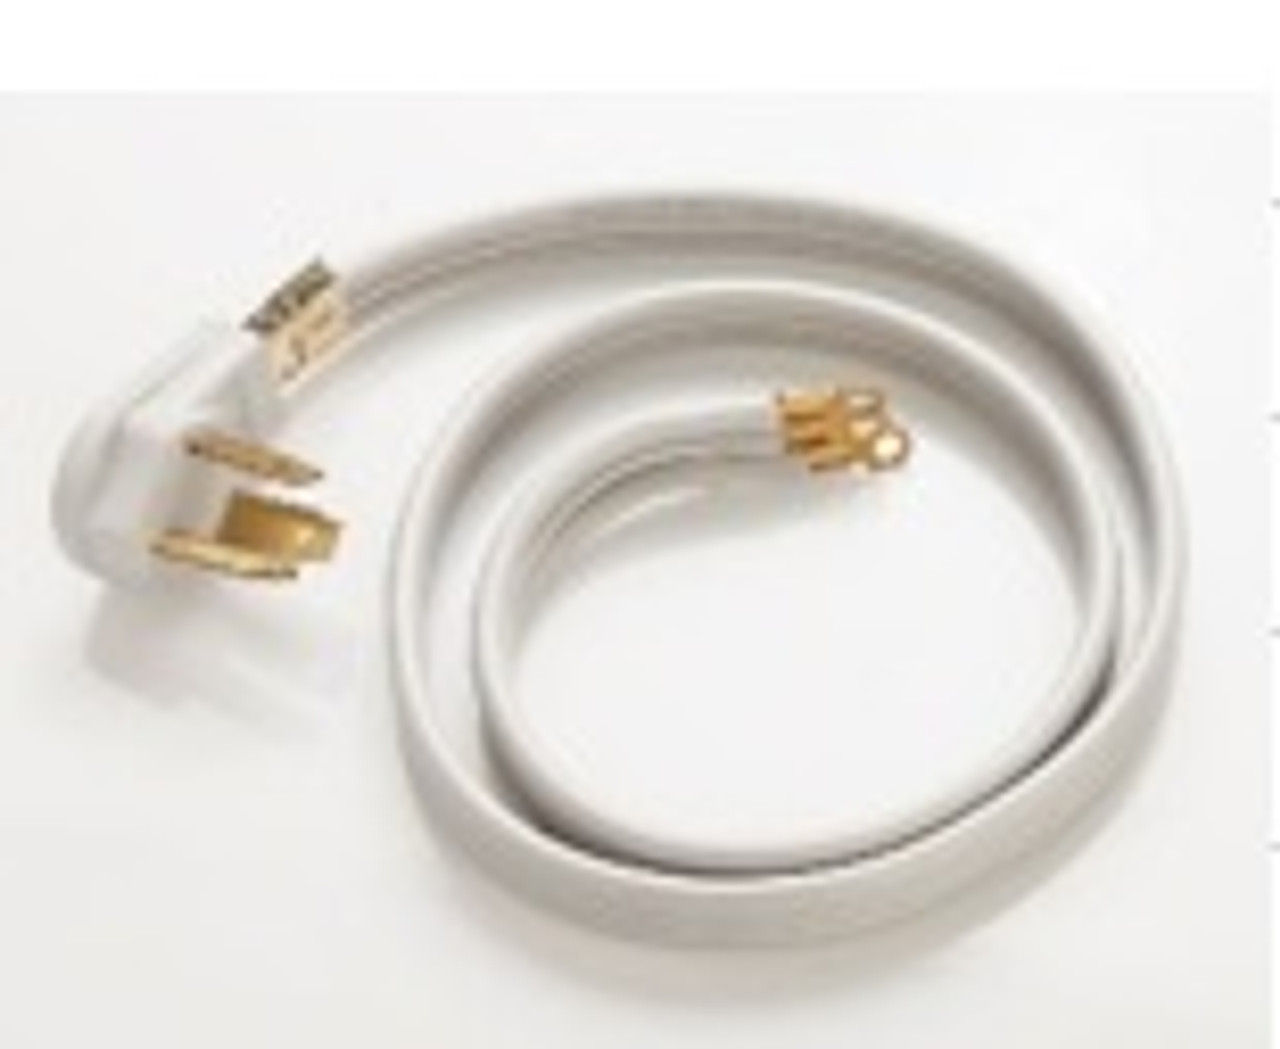 5' 3-WIRE DRYER CORD 30AMP